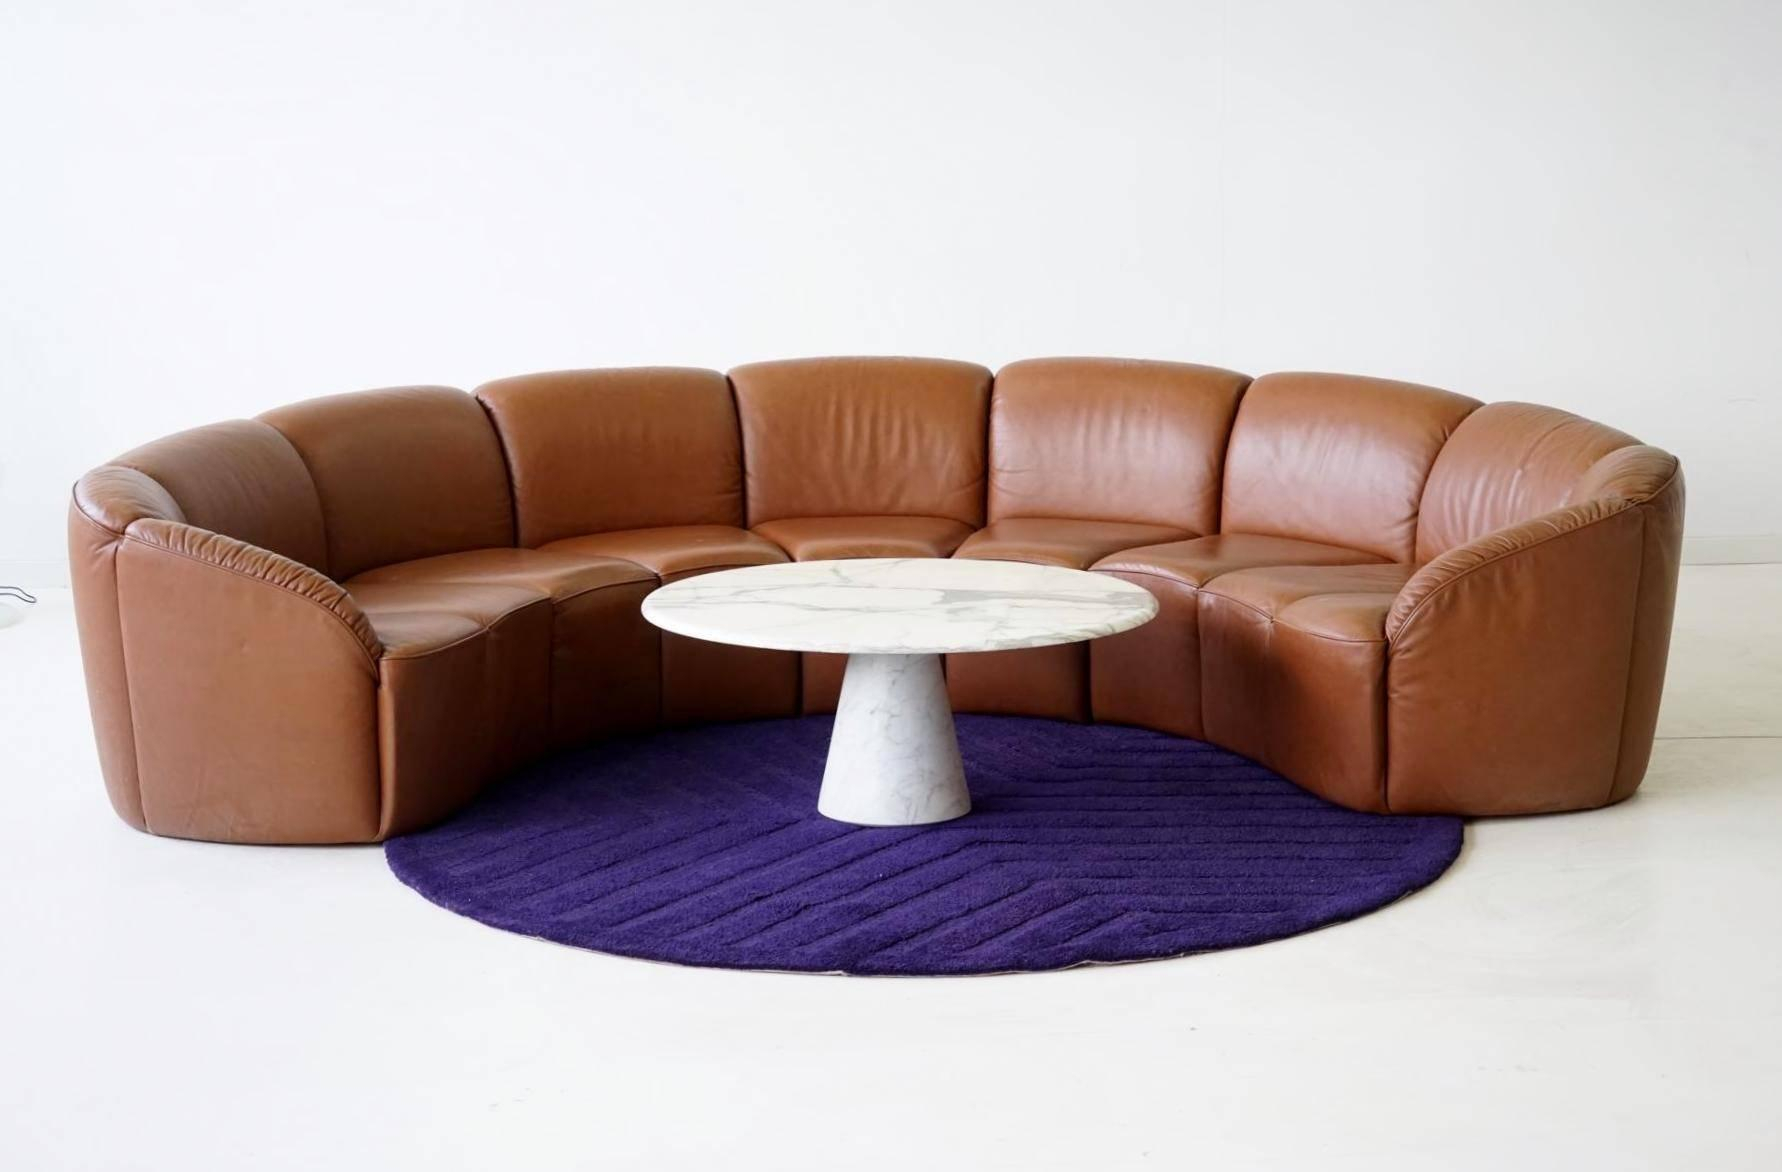 Half Round Leather Lounge Sofawalter Knoll, 1960S At 1Stdibs Throughout Walter Leather Sofa Chairs (View 13 of 25)